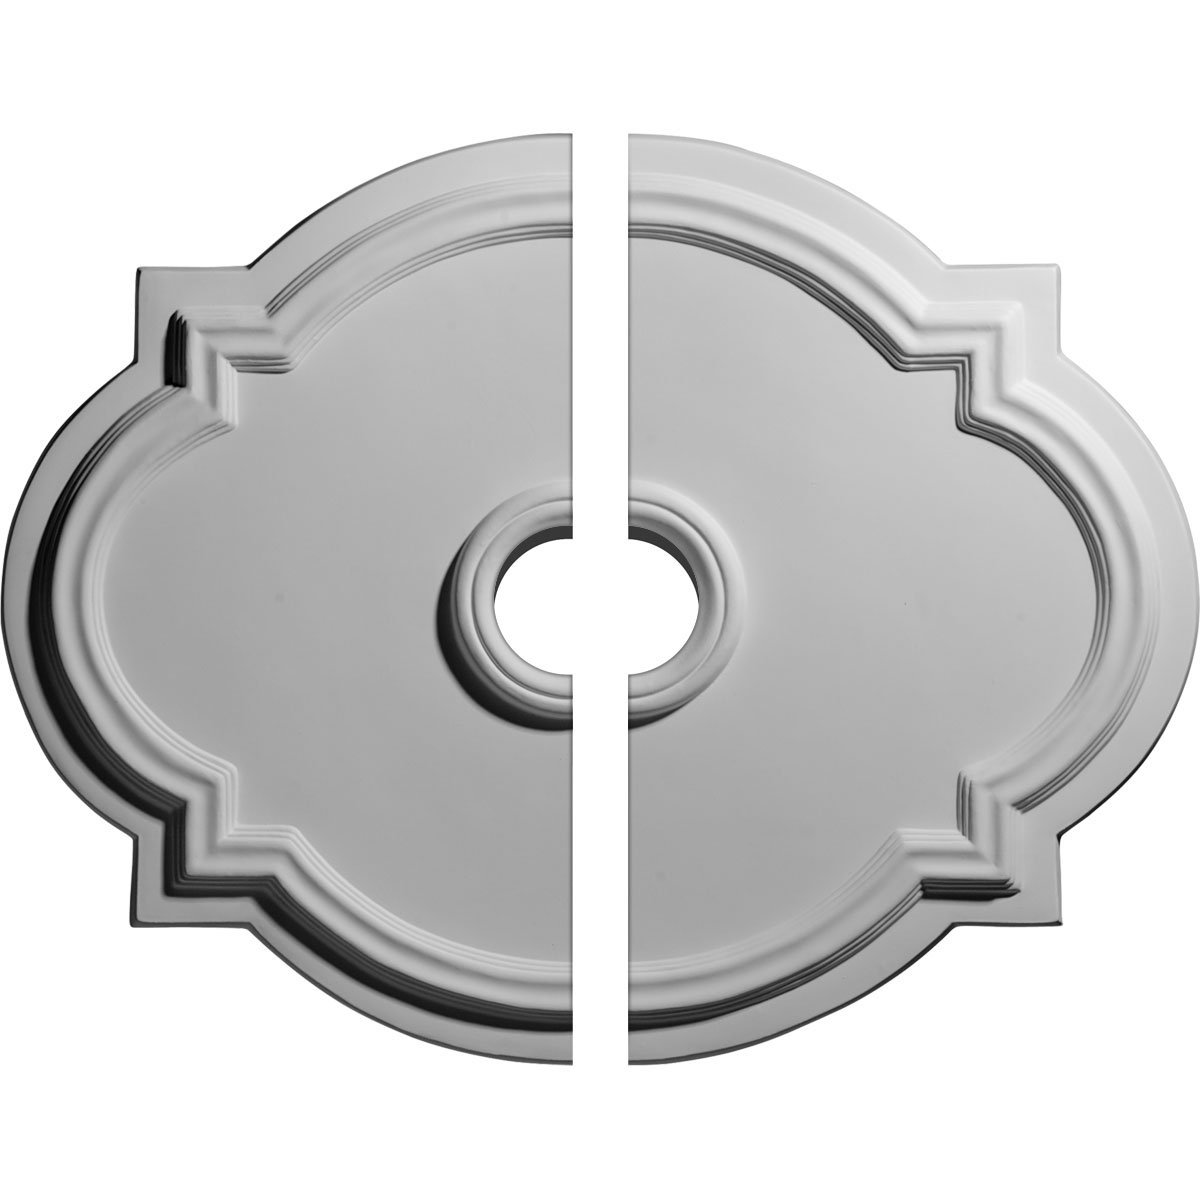 Ekena Millwork CM21WA2-03500 21 1/4'' W x 17 3/8'' H x 3 ID x 1'' P Waltz Ceiling Medallion, Two Piece (Fits Canopies up to 4 1/2''), Factory Primed and Ready to Paint